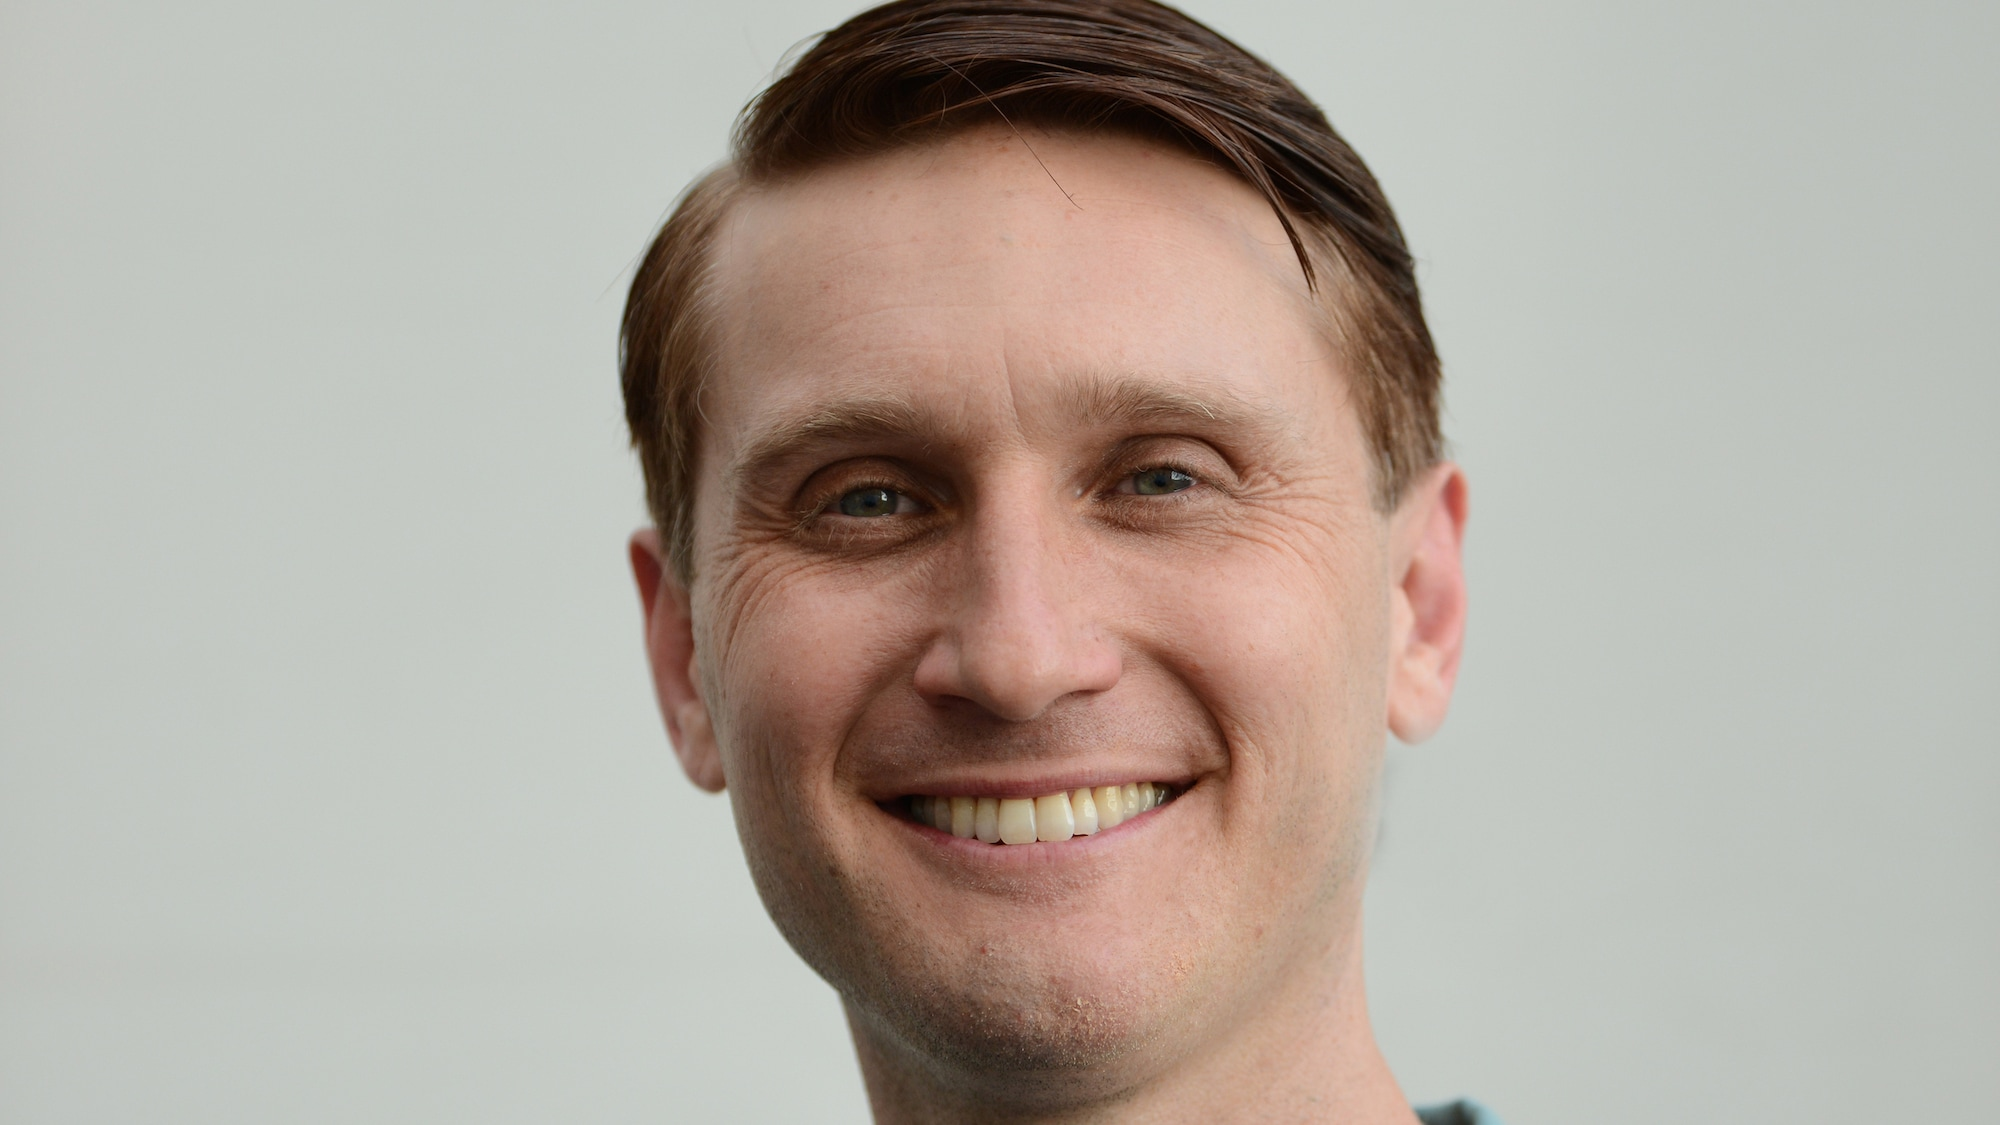 Aaron Staton as Wally Schirra in National Geographic's THE RIGHT STUFF streaming on Disney+. (National Geographic/Gene Page)